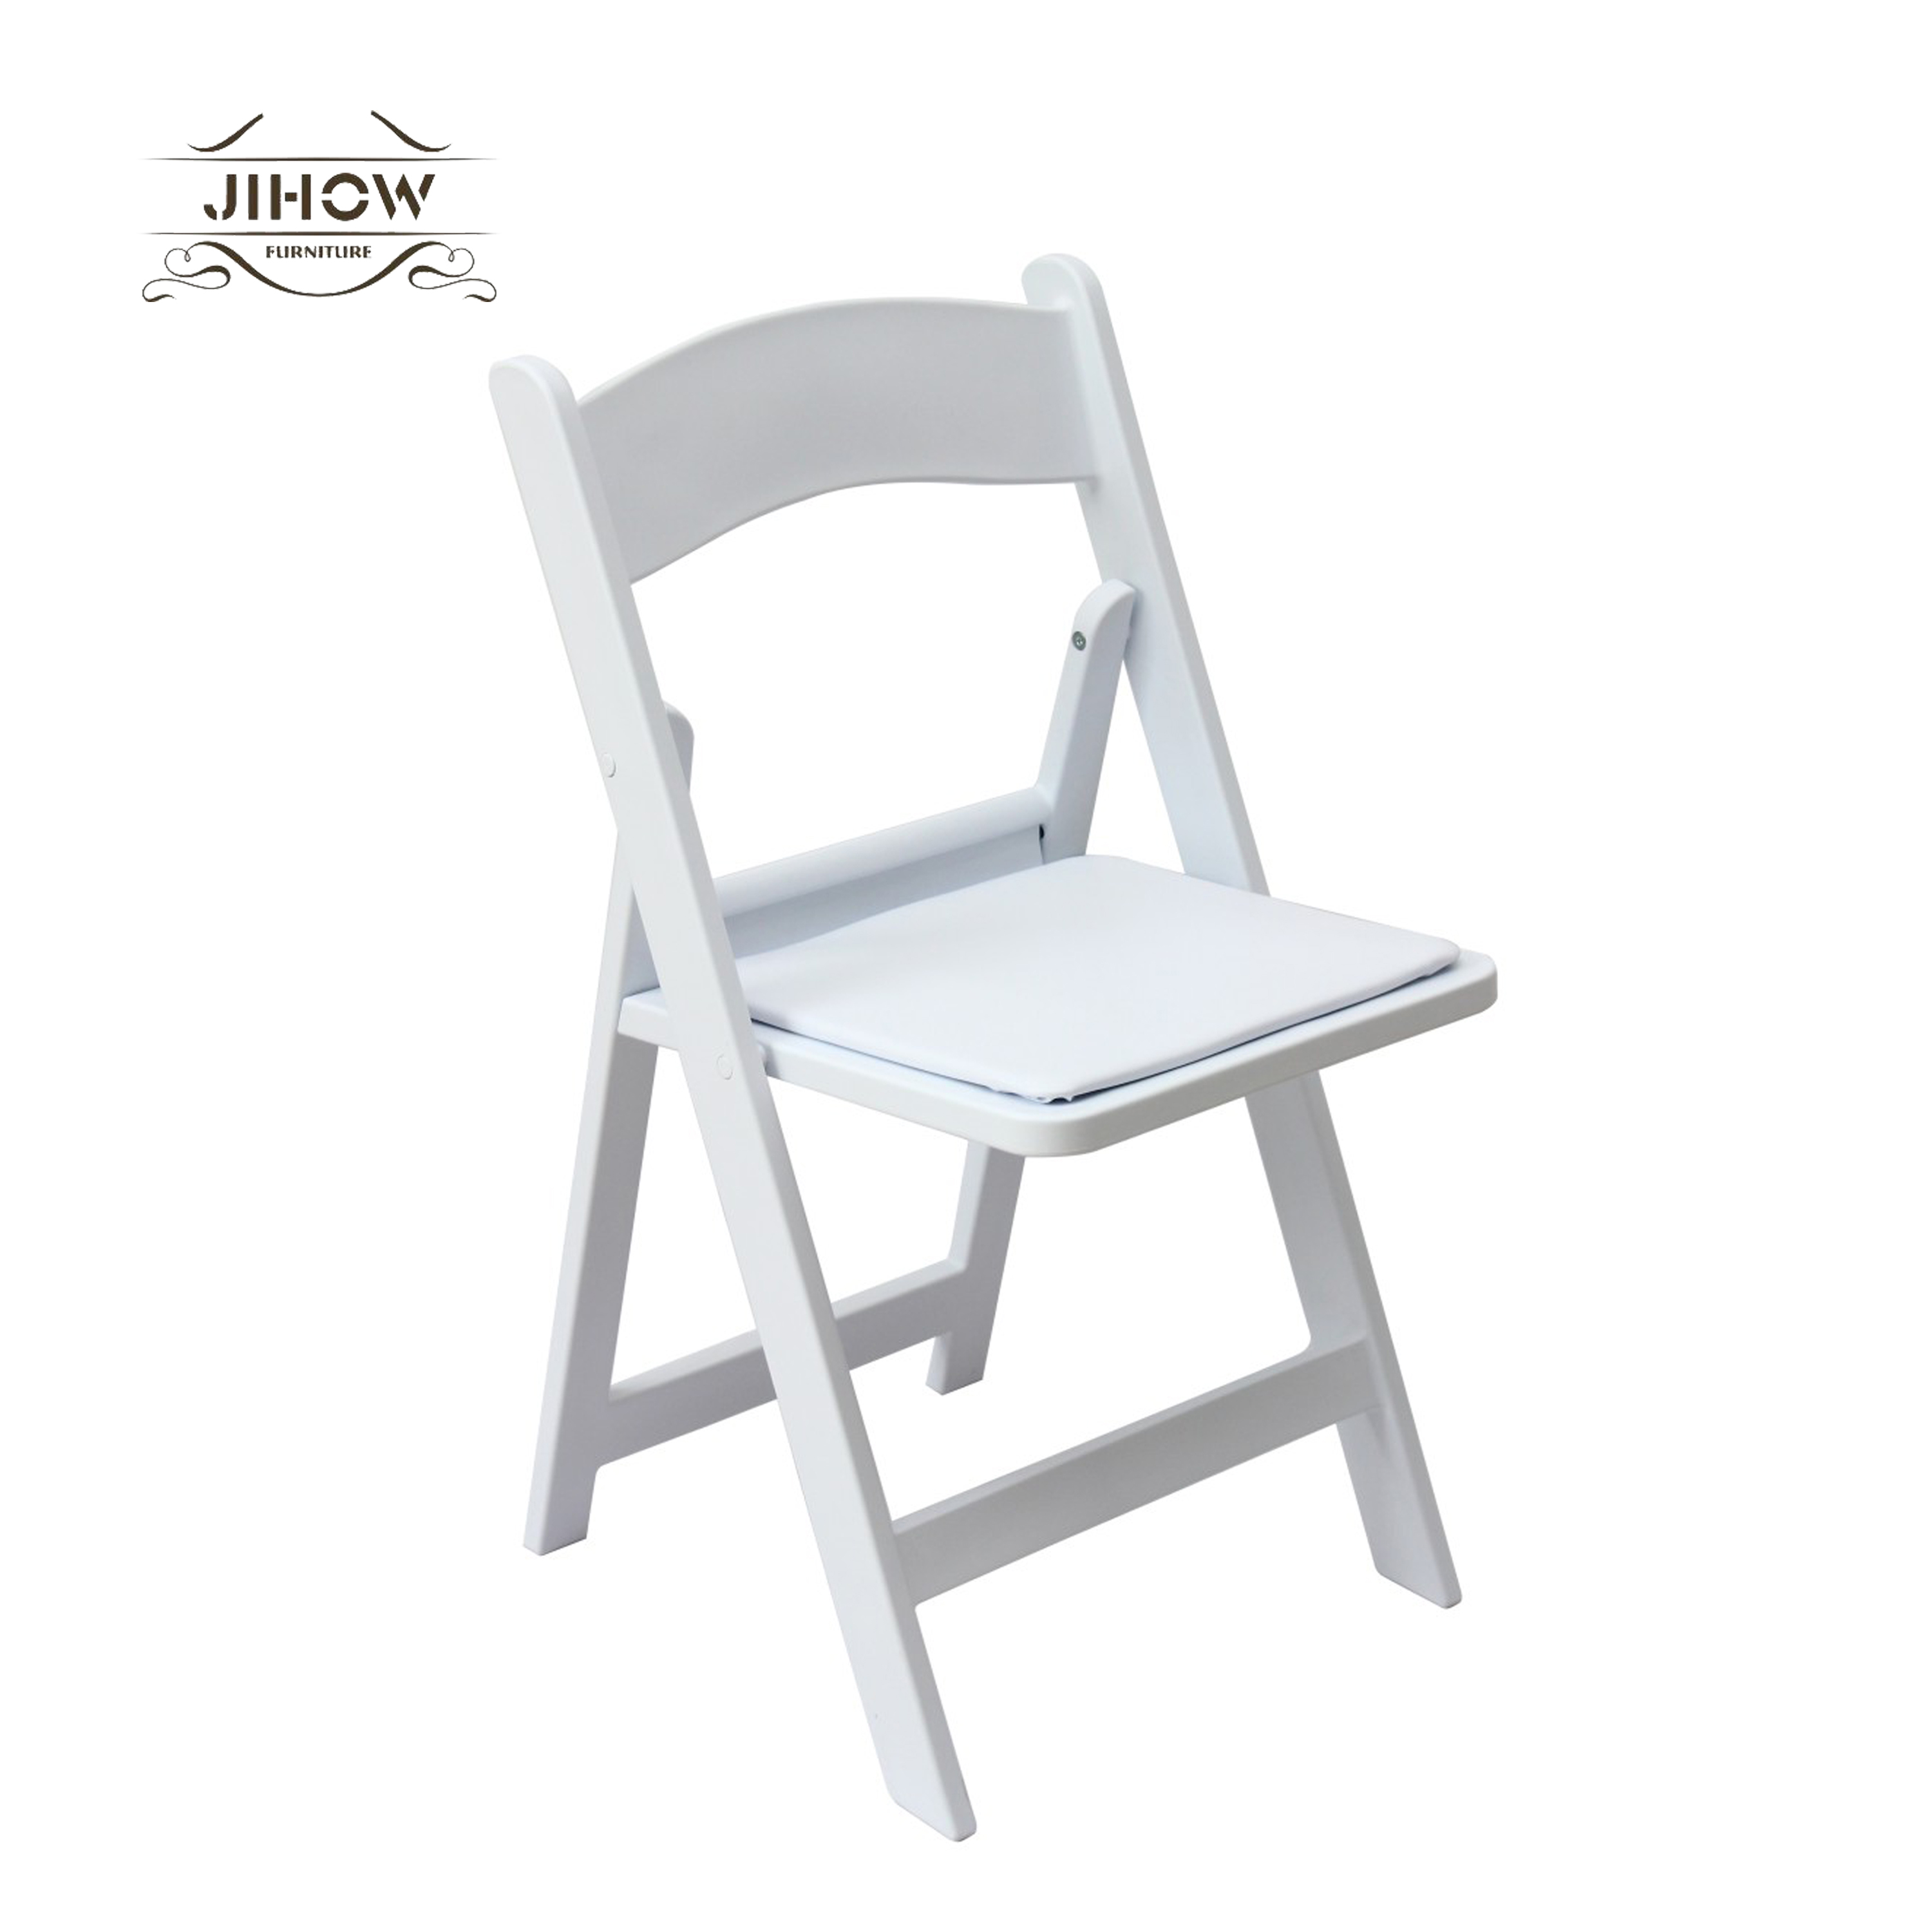 Groovy China Padded American White Resin Folding Chairs For Wedding Buy American Chair White Wedding Folding Chairs White American Folding Chair Product On Squirreltailoven Fun Painted Chair Ideas Images Squirreltailovenorg